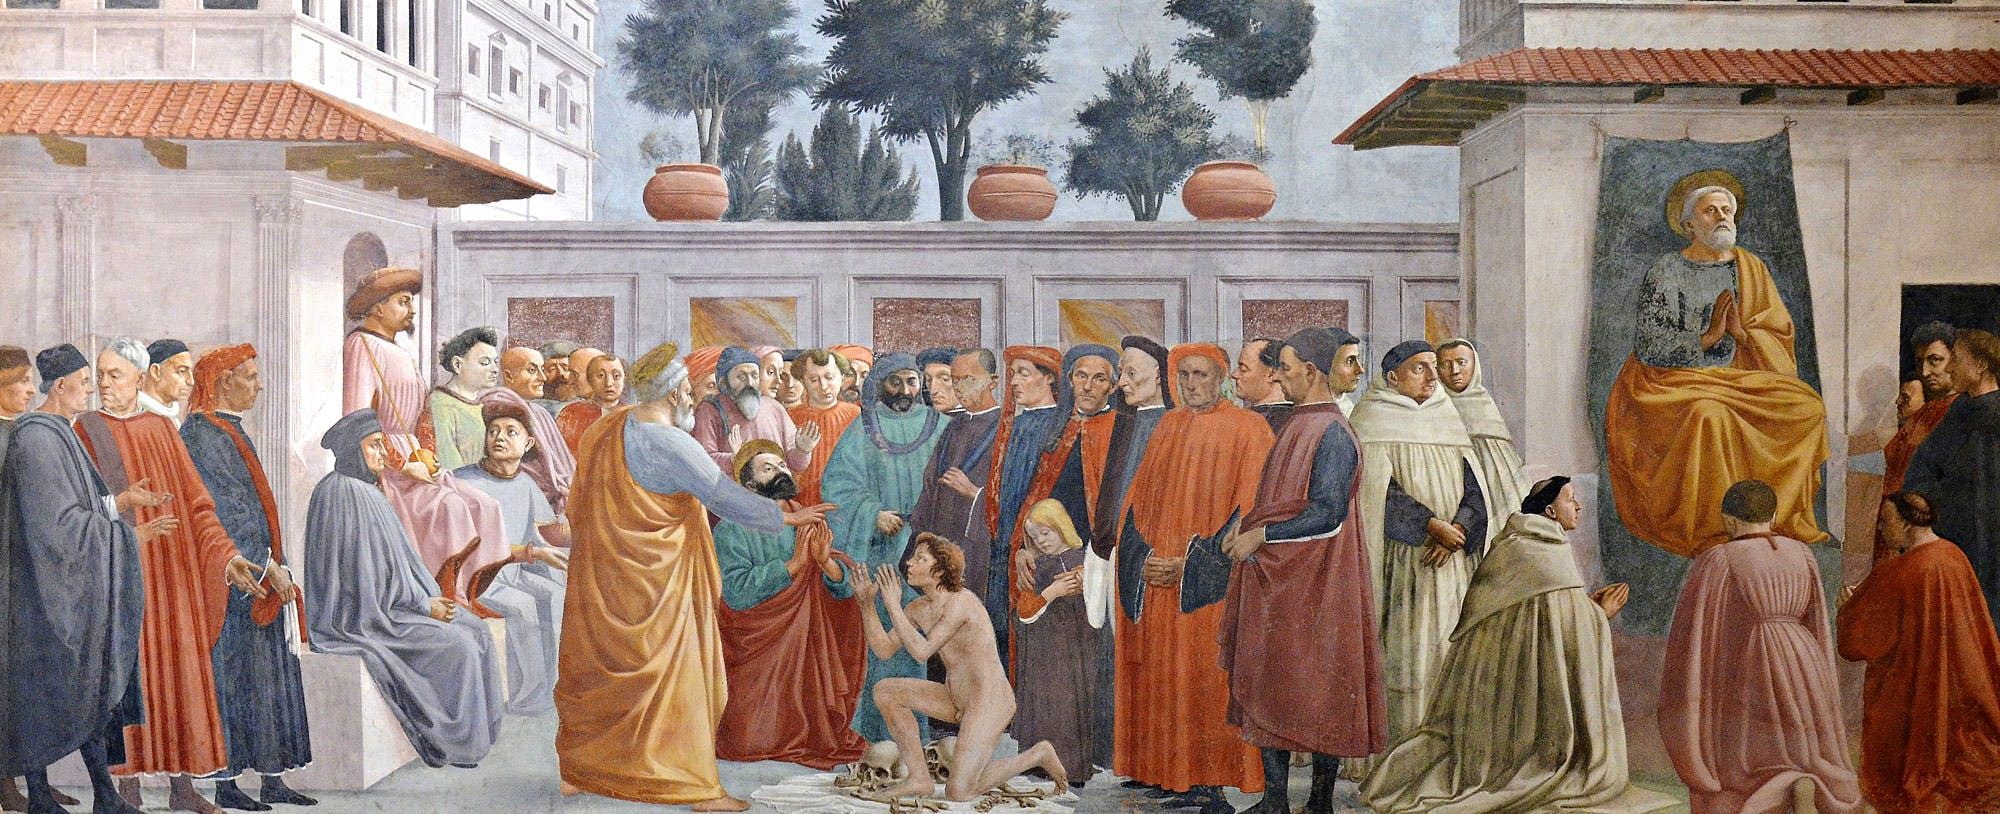 Cappella Brancacci Florence, The Brancacci Chapel: Masaccio in the Cappella Brancacci in Santa ...